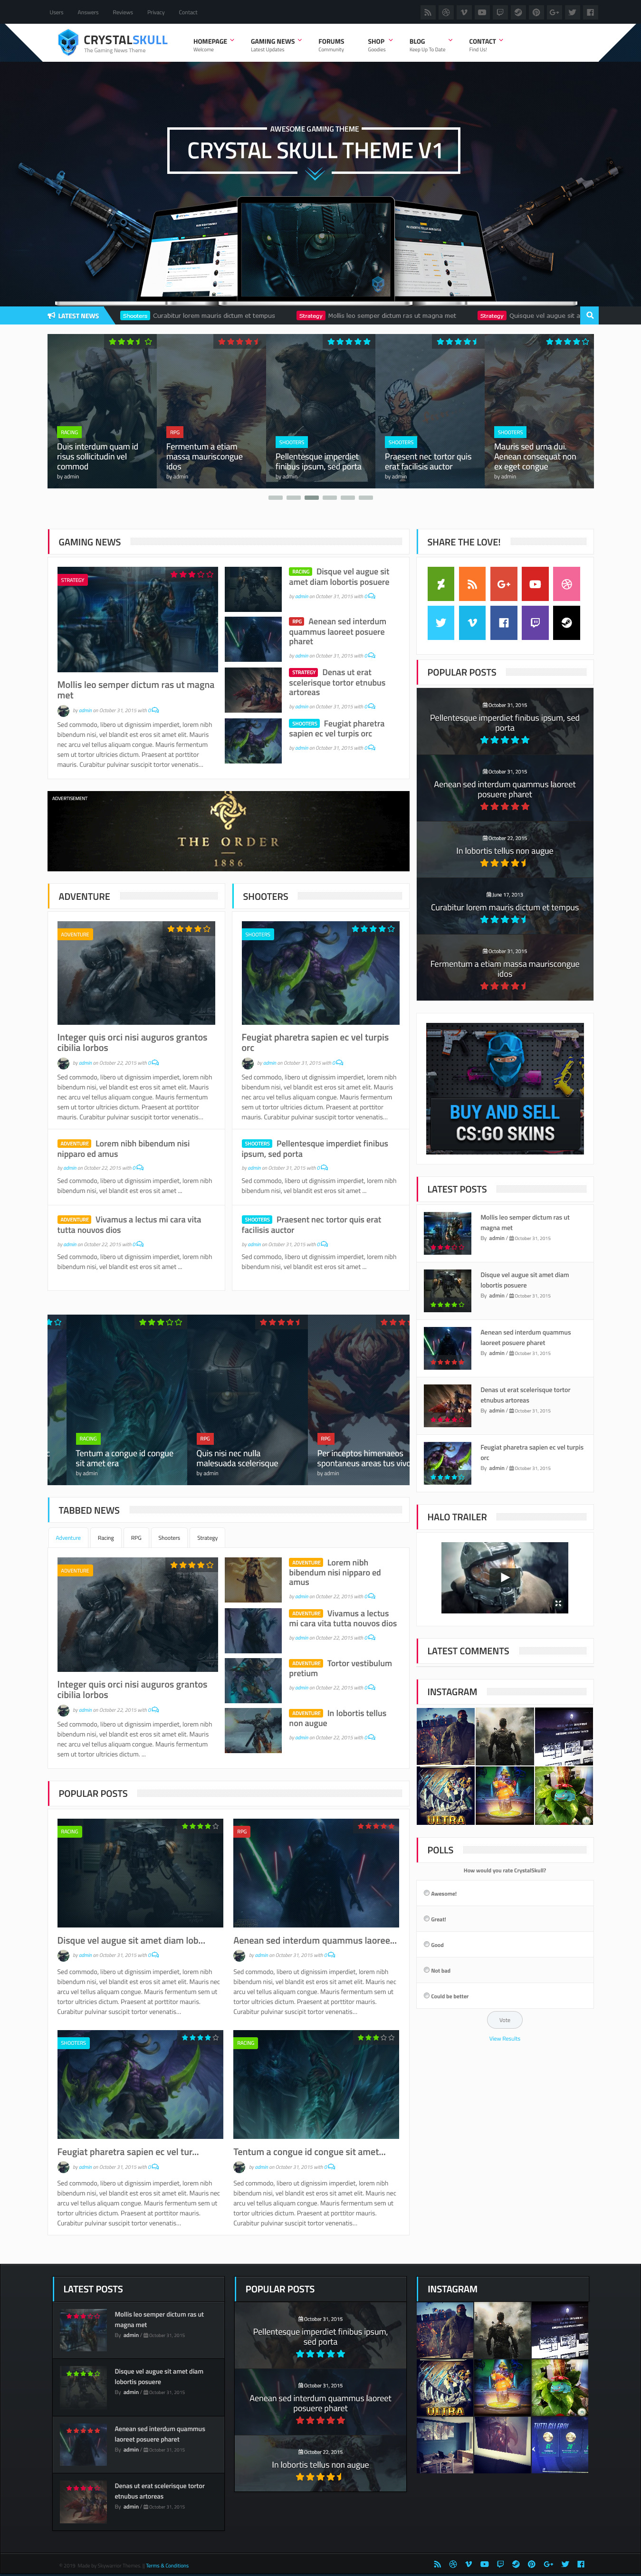 crystalskull best premium gaming wordpress theme - 10+ Best Premium Gaming WordPress Themes